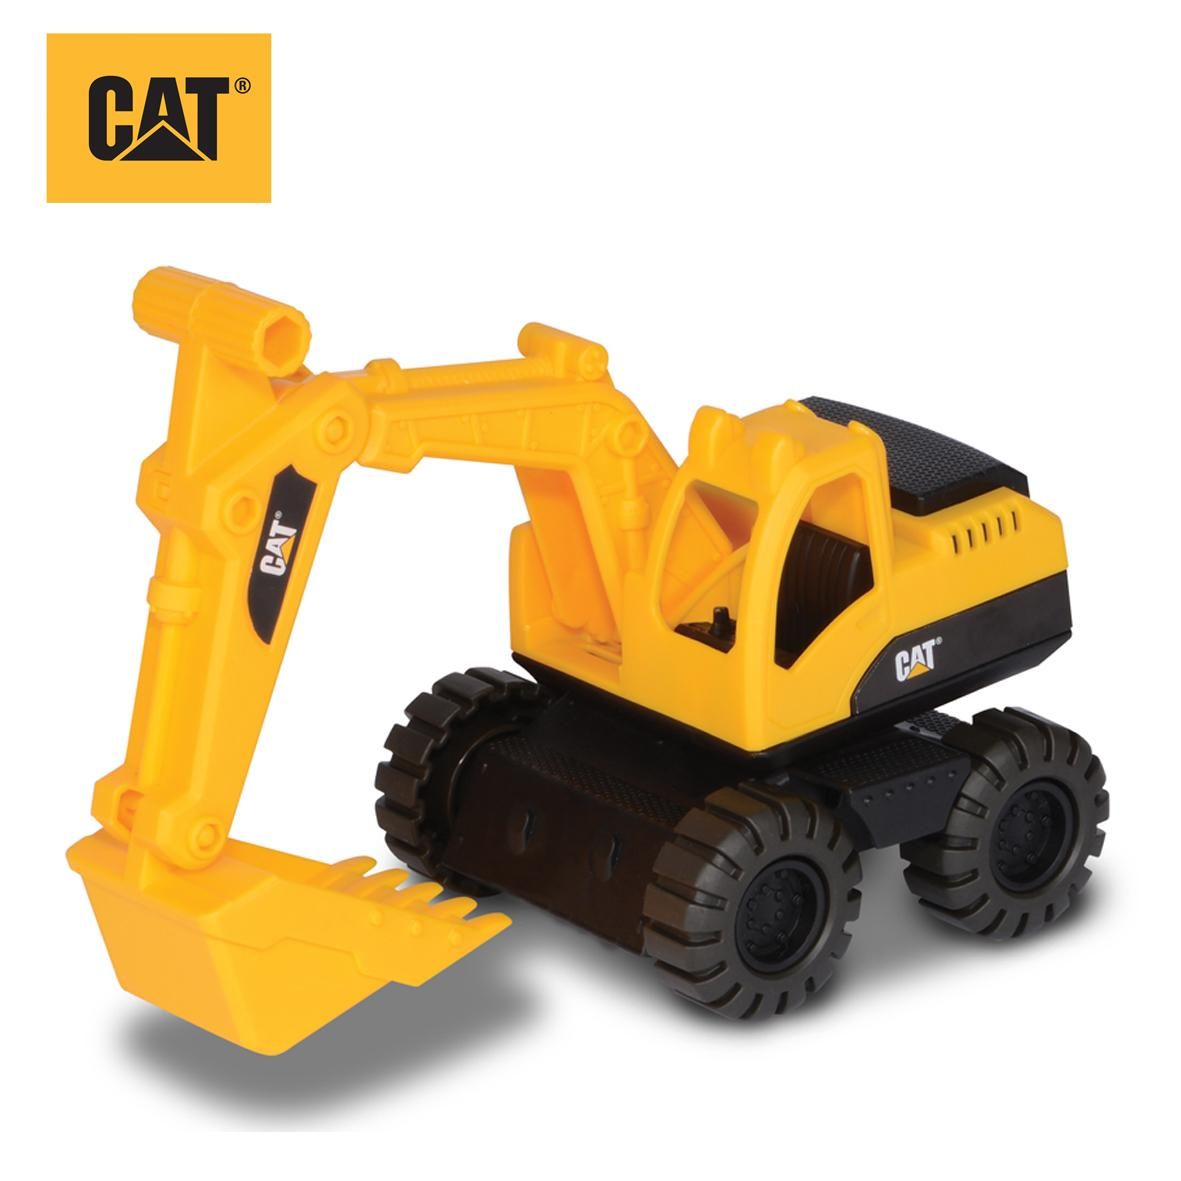 Cat Construction Toys For Toddlers : Cat construction crew excavator vehicle playset amazon